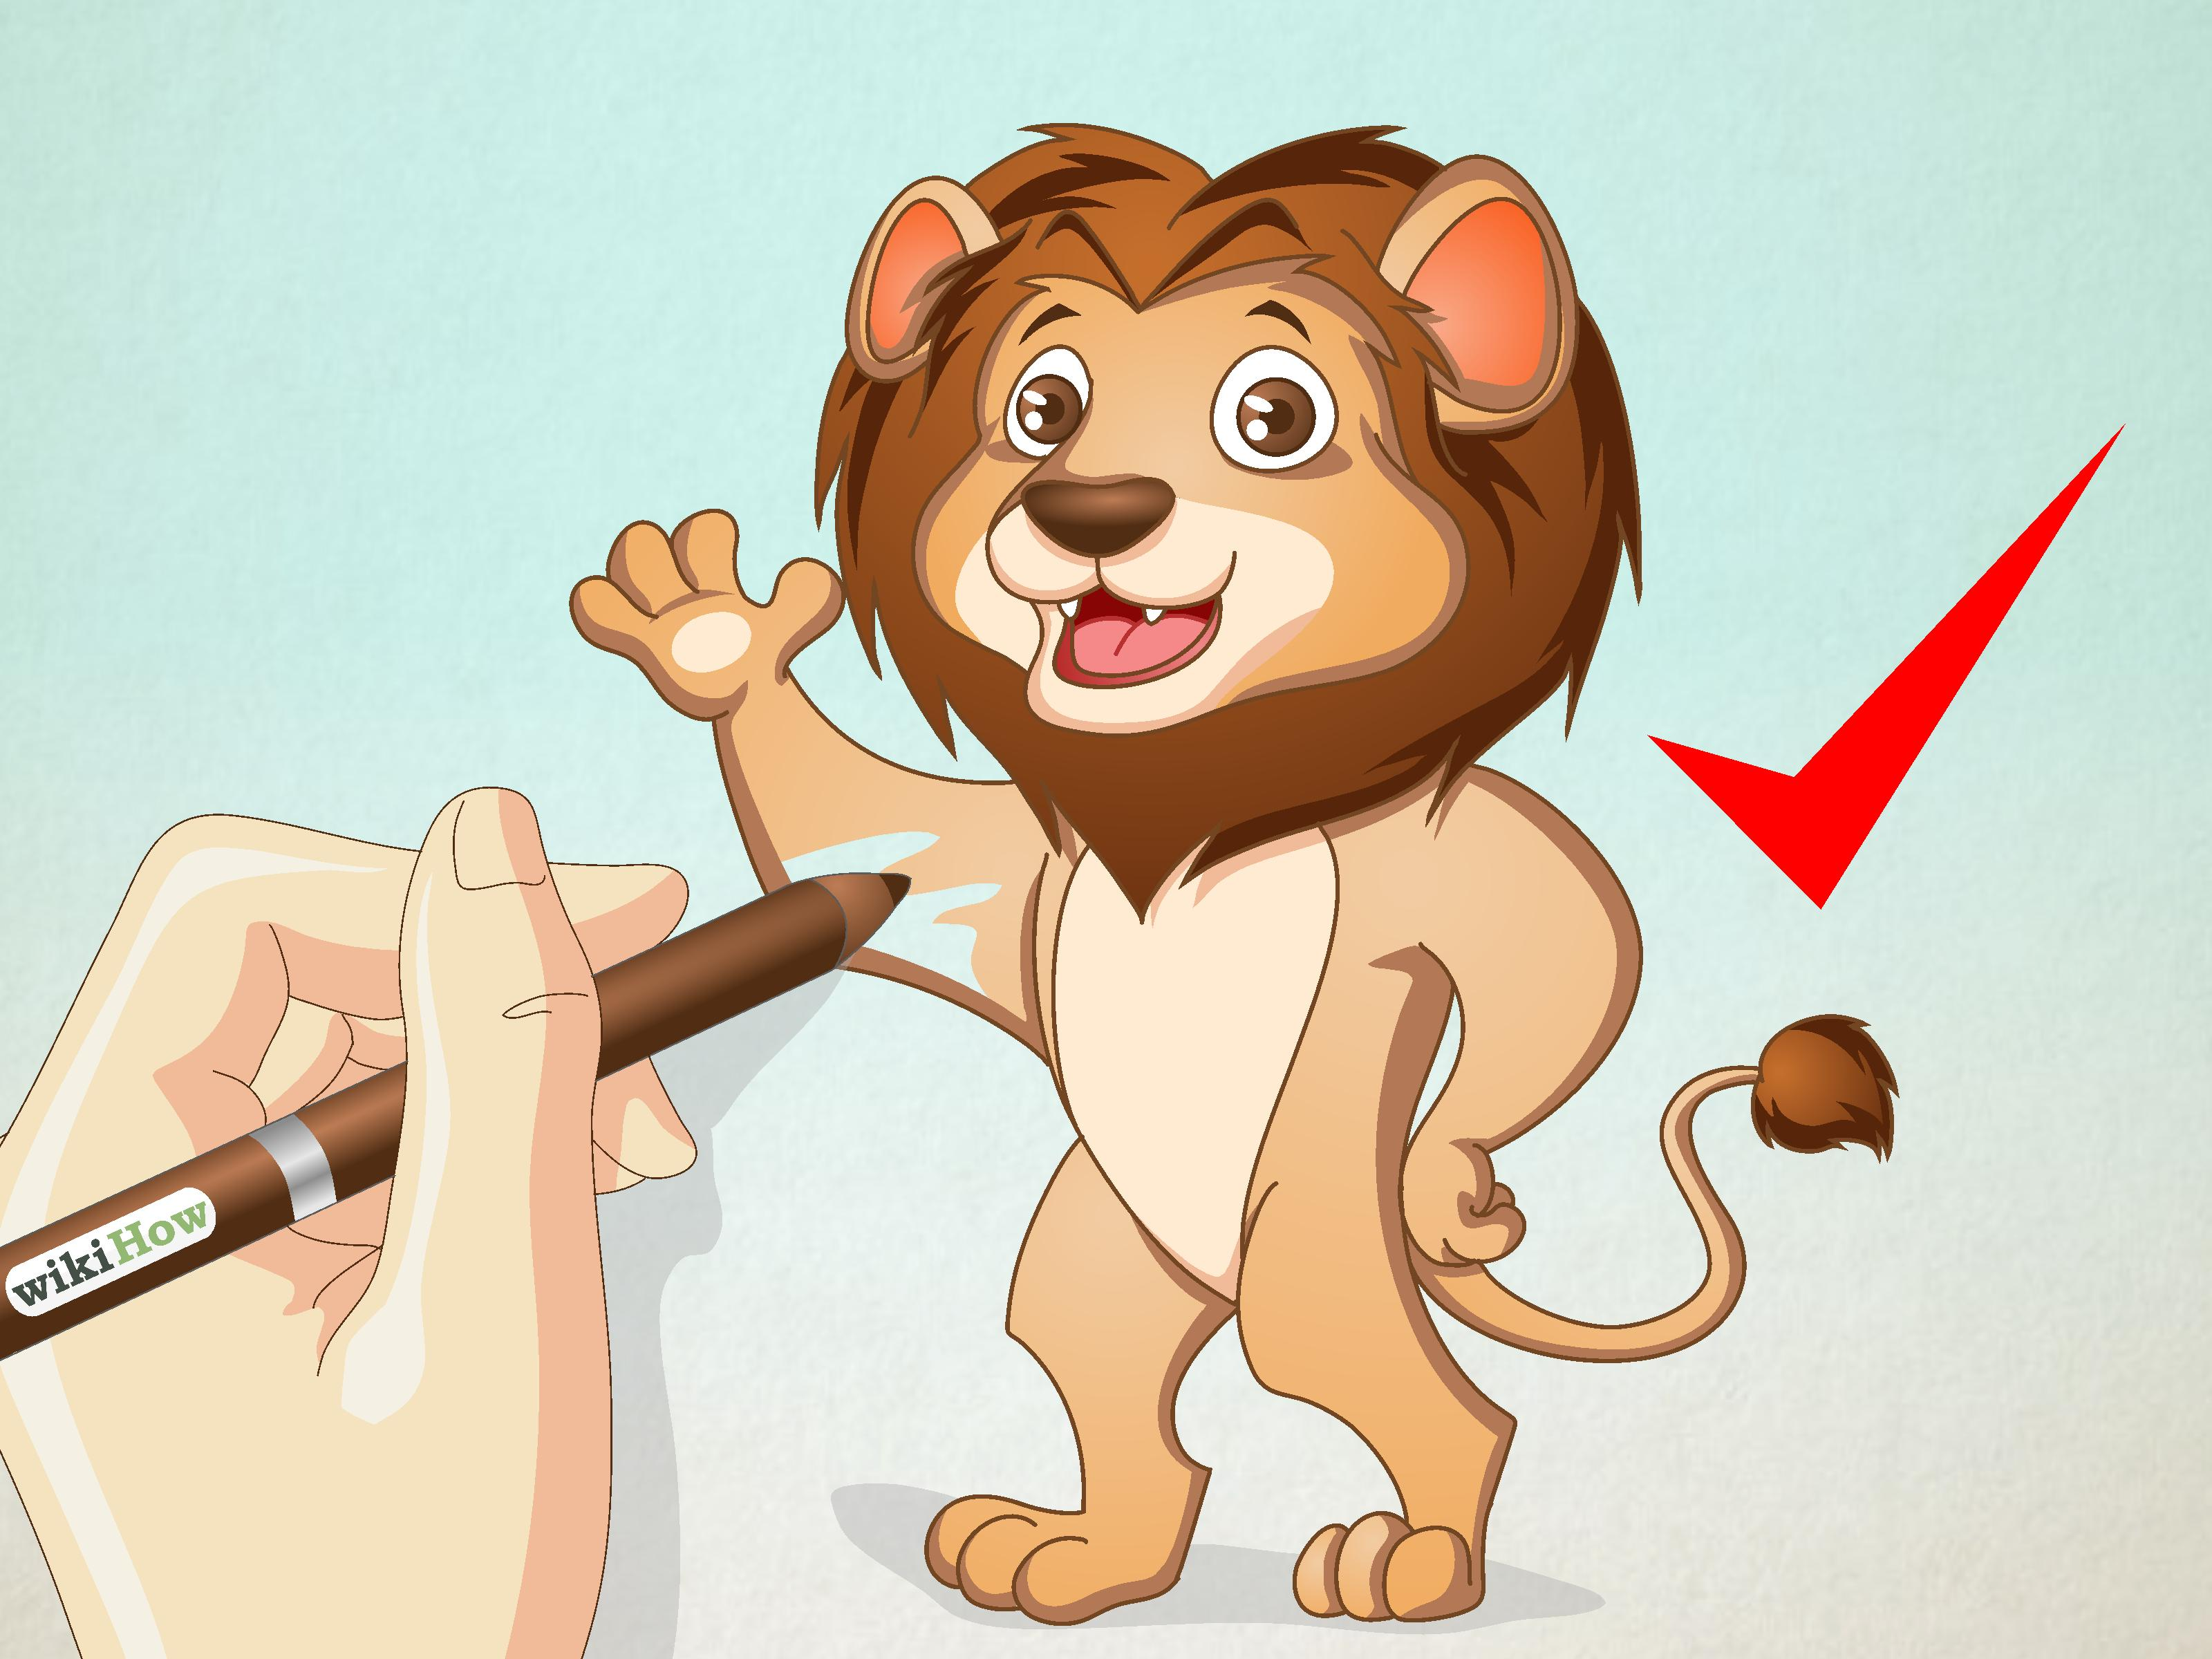 3200x2400 How To Draw A Cartoon Lion 13 Steps (With Pictures)